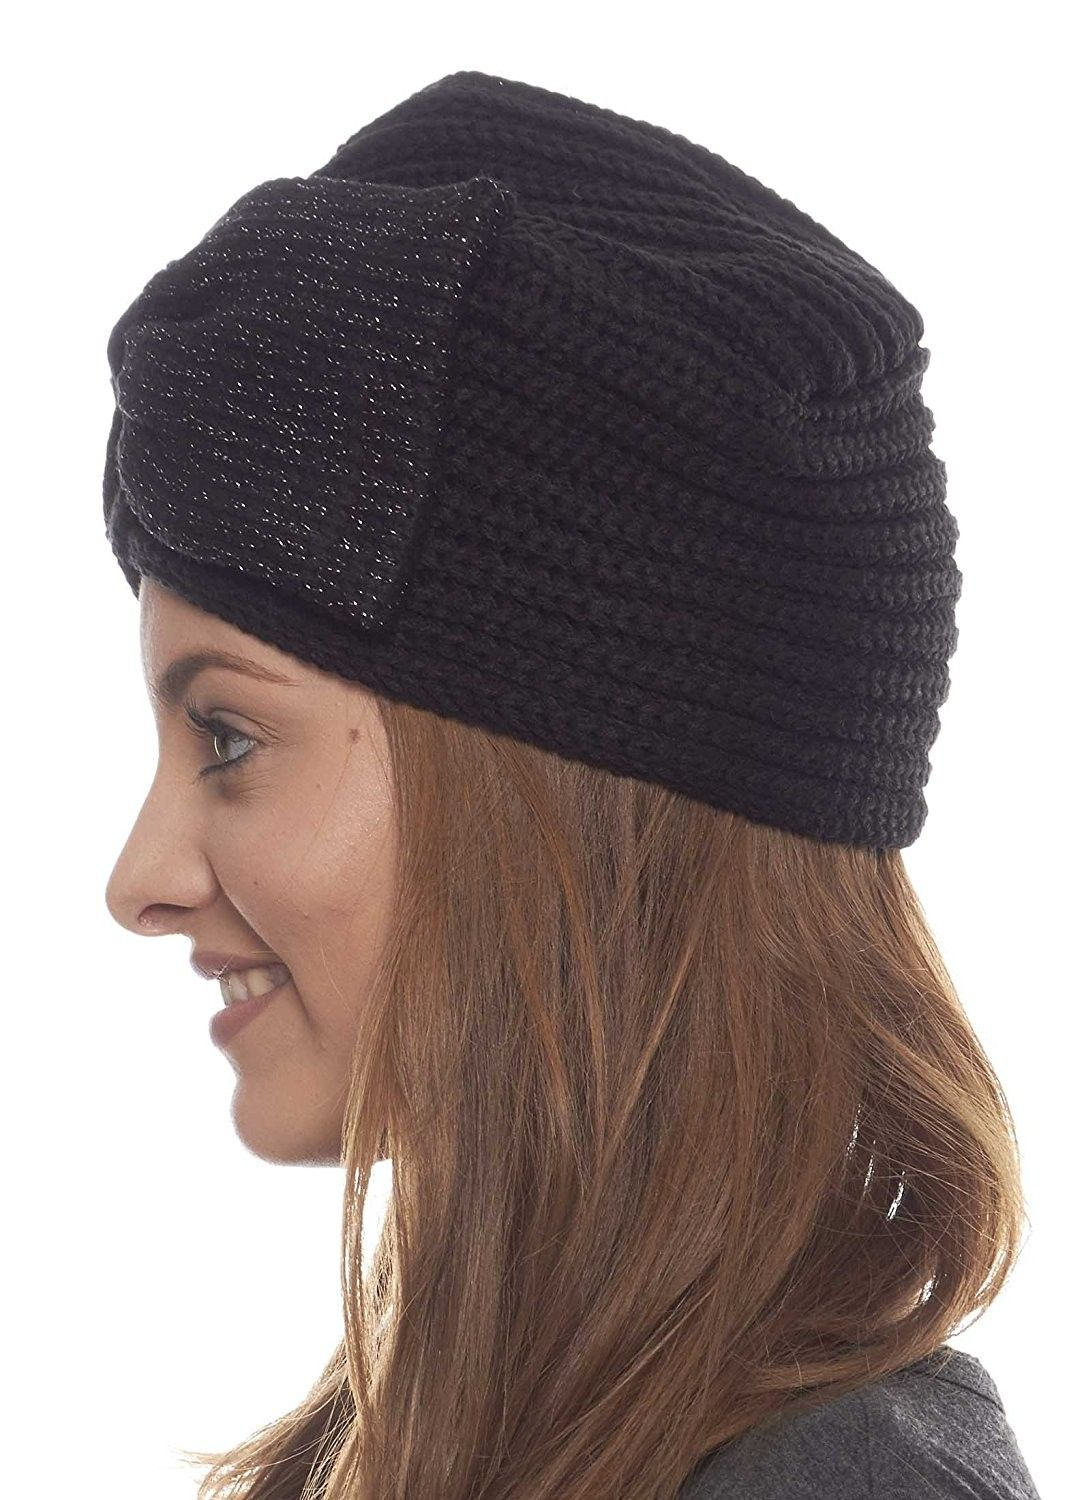 9fc5af09528913 Hats & Caps, Women's Hats & Caps, Skullies & Beanies, Cheerful Chill Knit  Winter Hat with Bow - Black - CU11I0MI0Y5 #women #hats #caps #fashion  #style ...